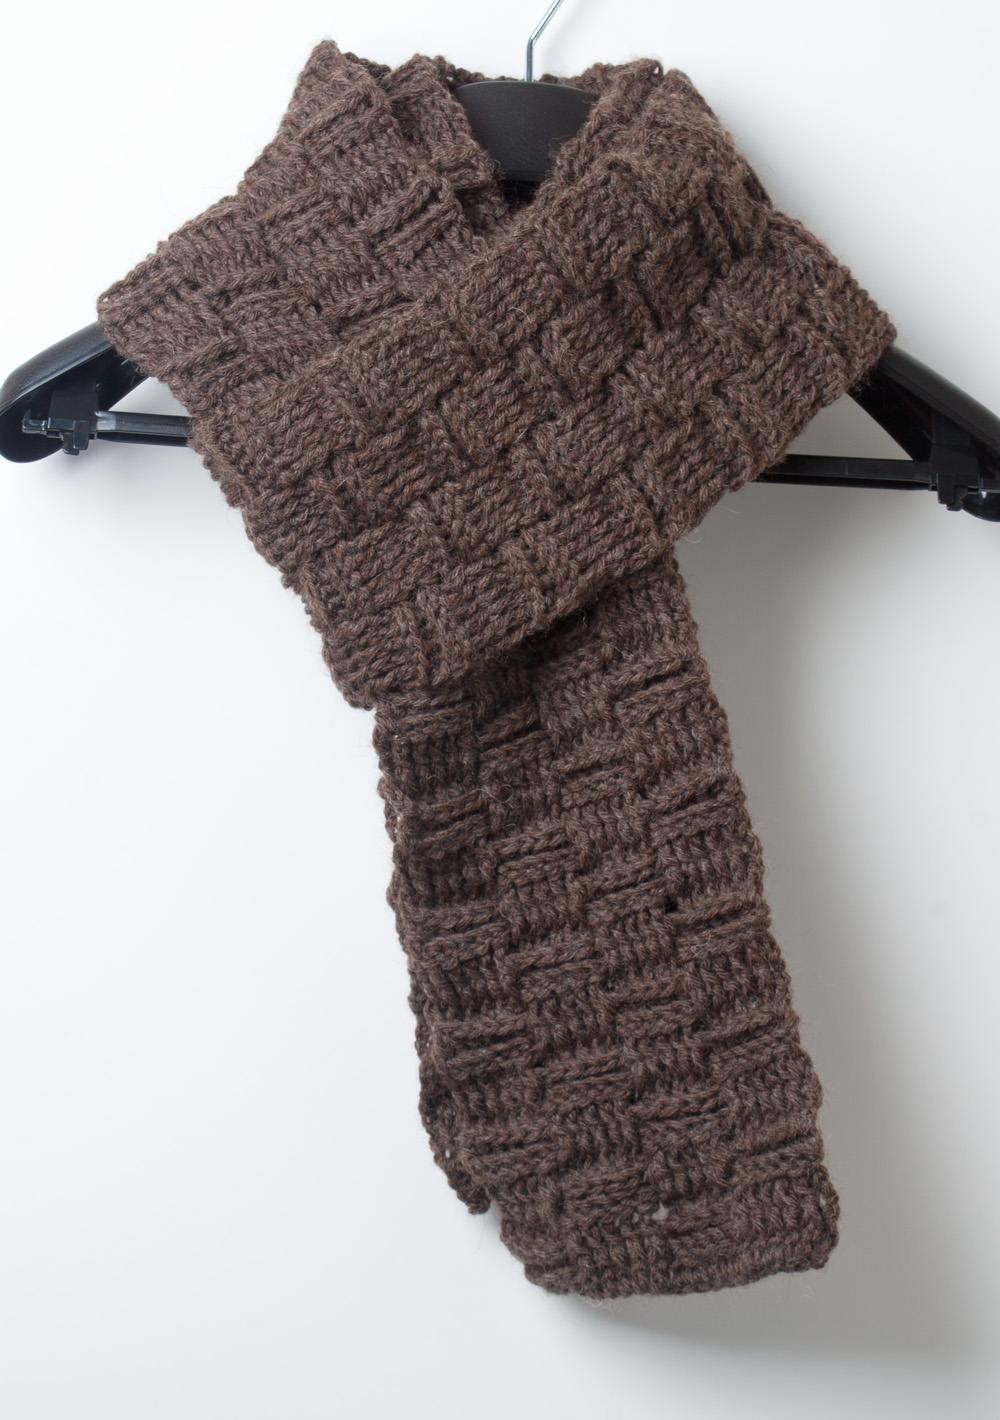 Free Crochet Patterns For A Man s Scarf : Crochet Pattern Reversible Cable Scarf Crochet Patterns ...